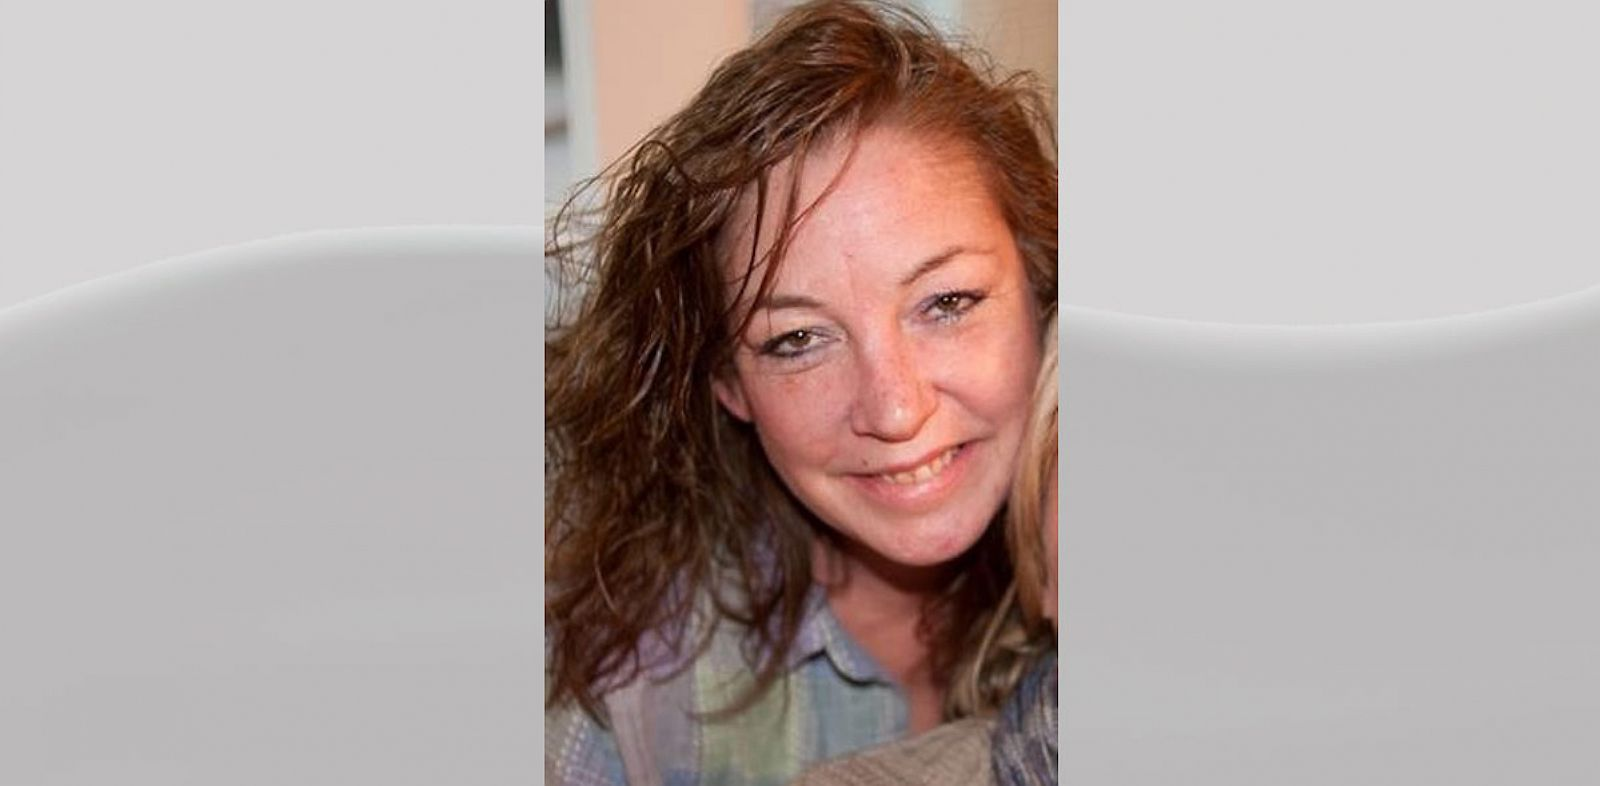 PHOTO: The body of Leslie Wehmer was found slumped over in an unlocked car